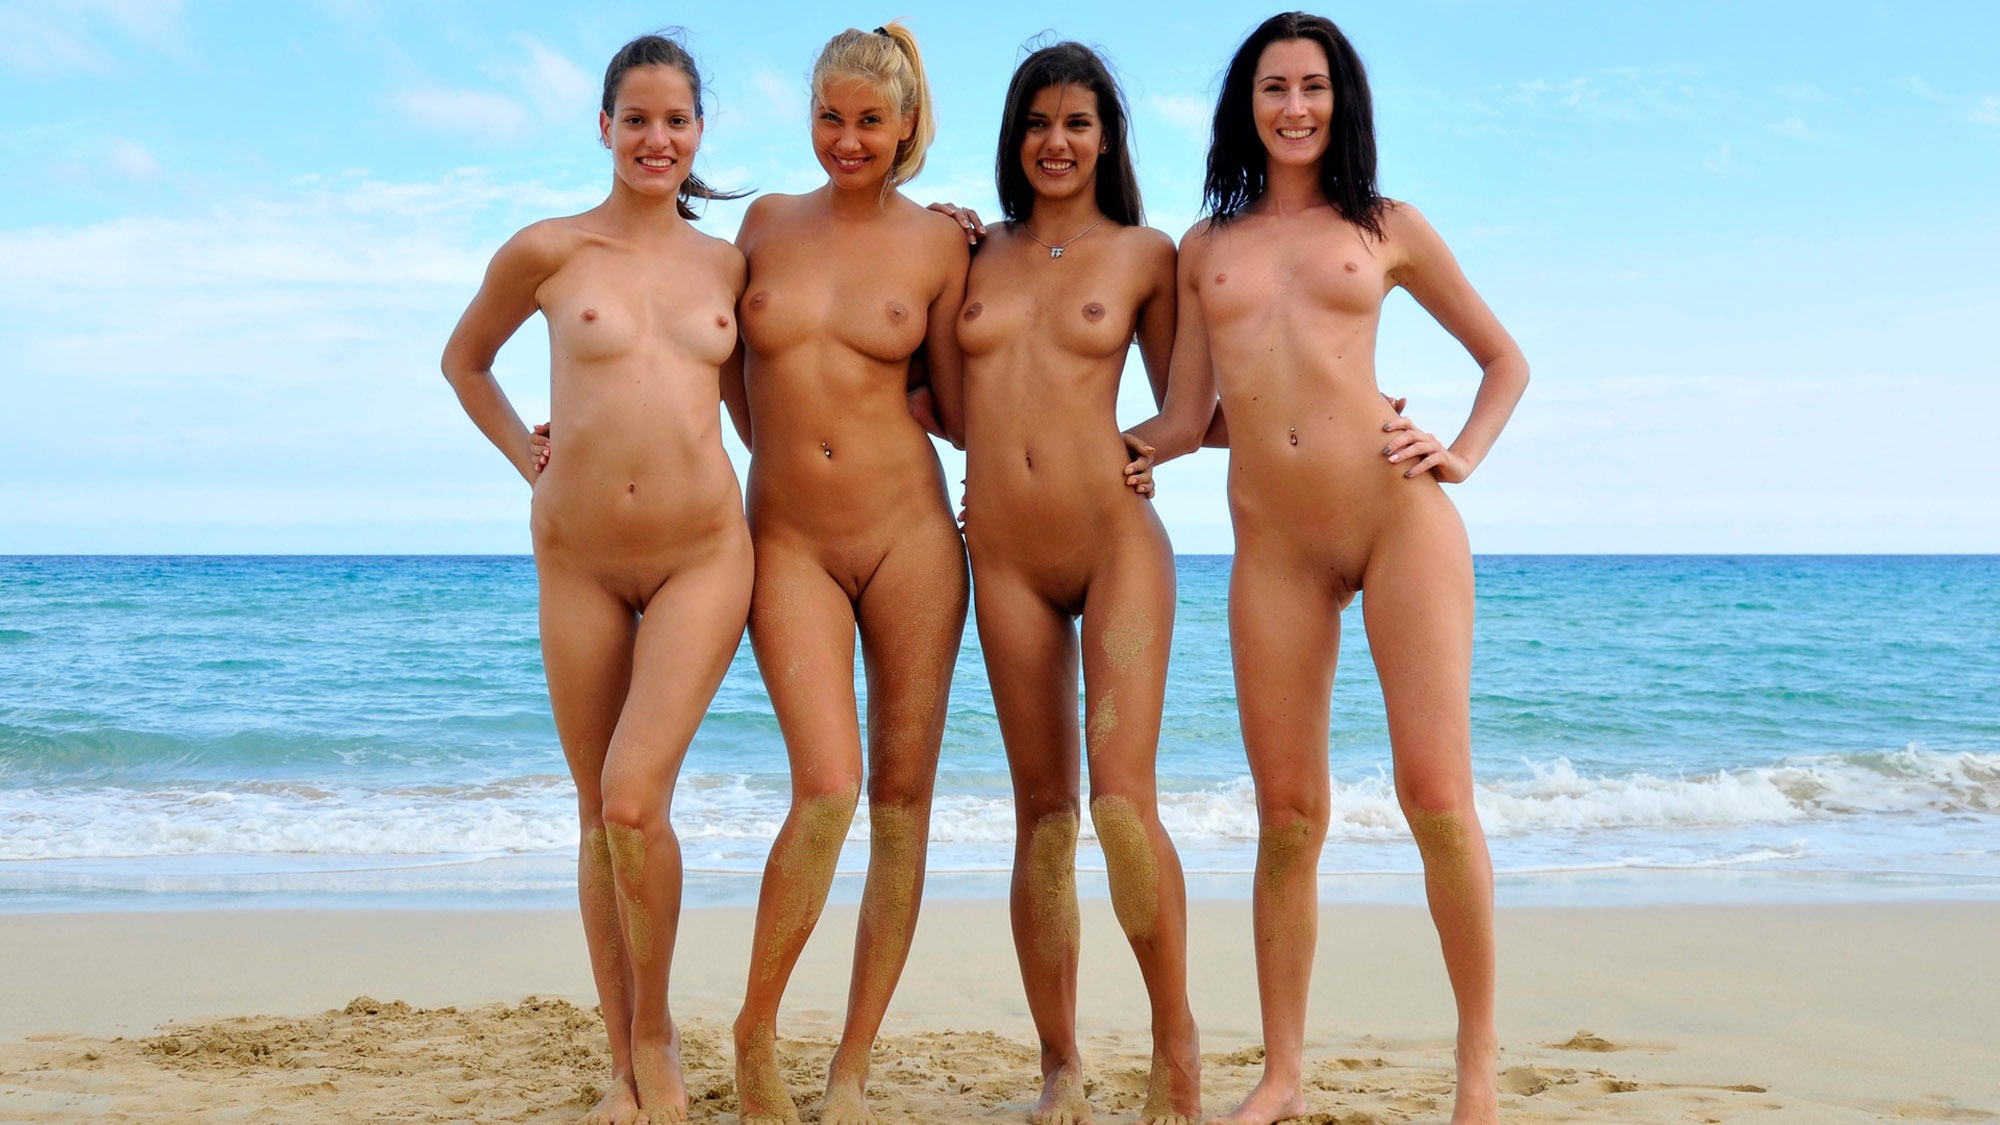 youtube-nude-beach-shots